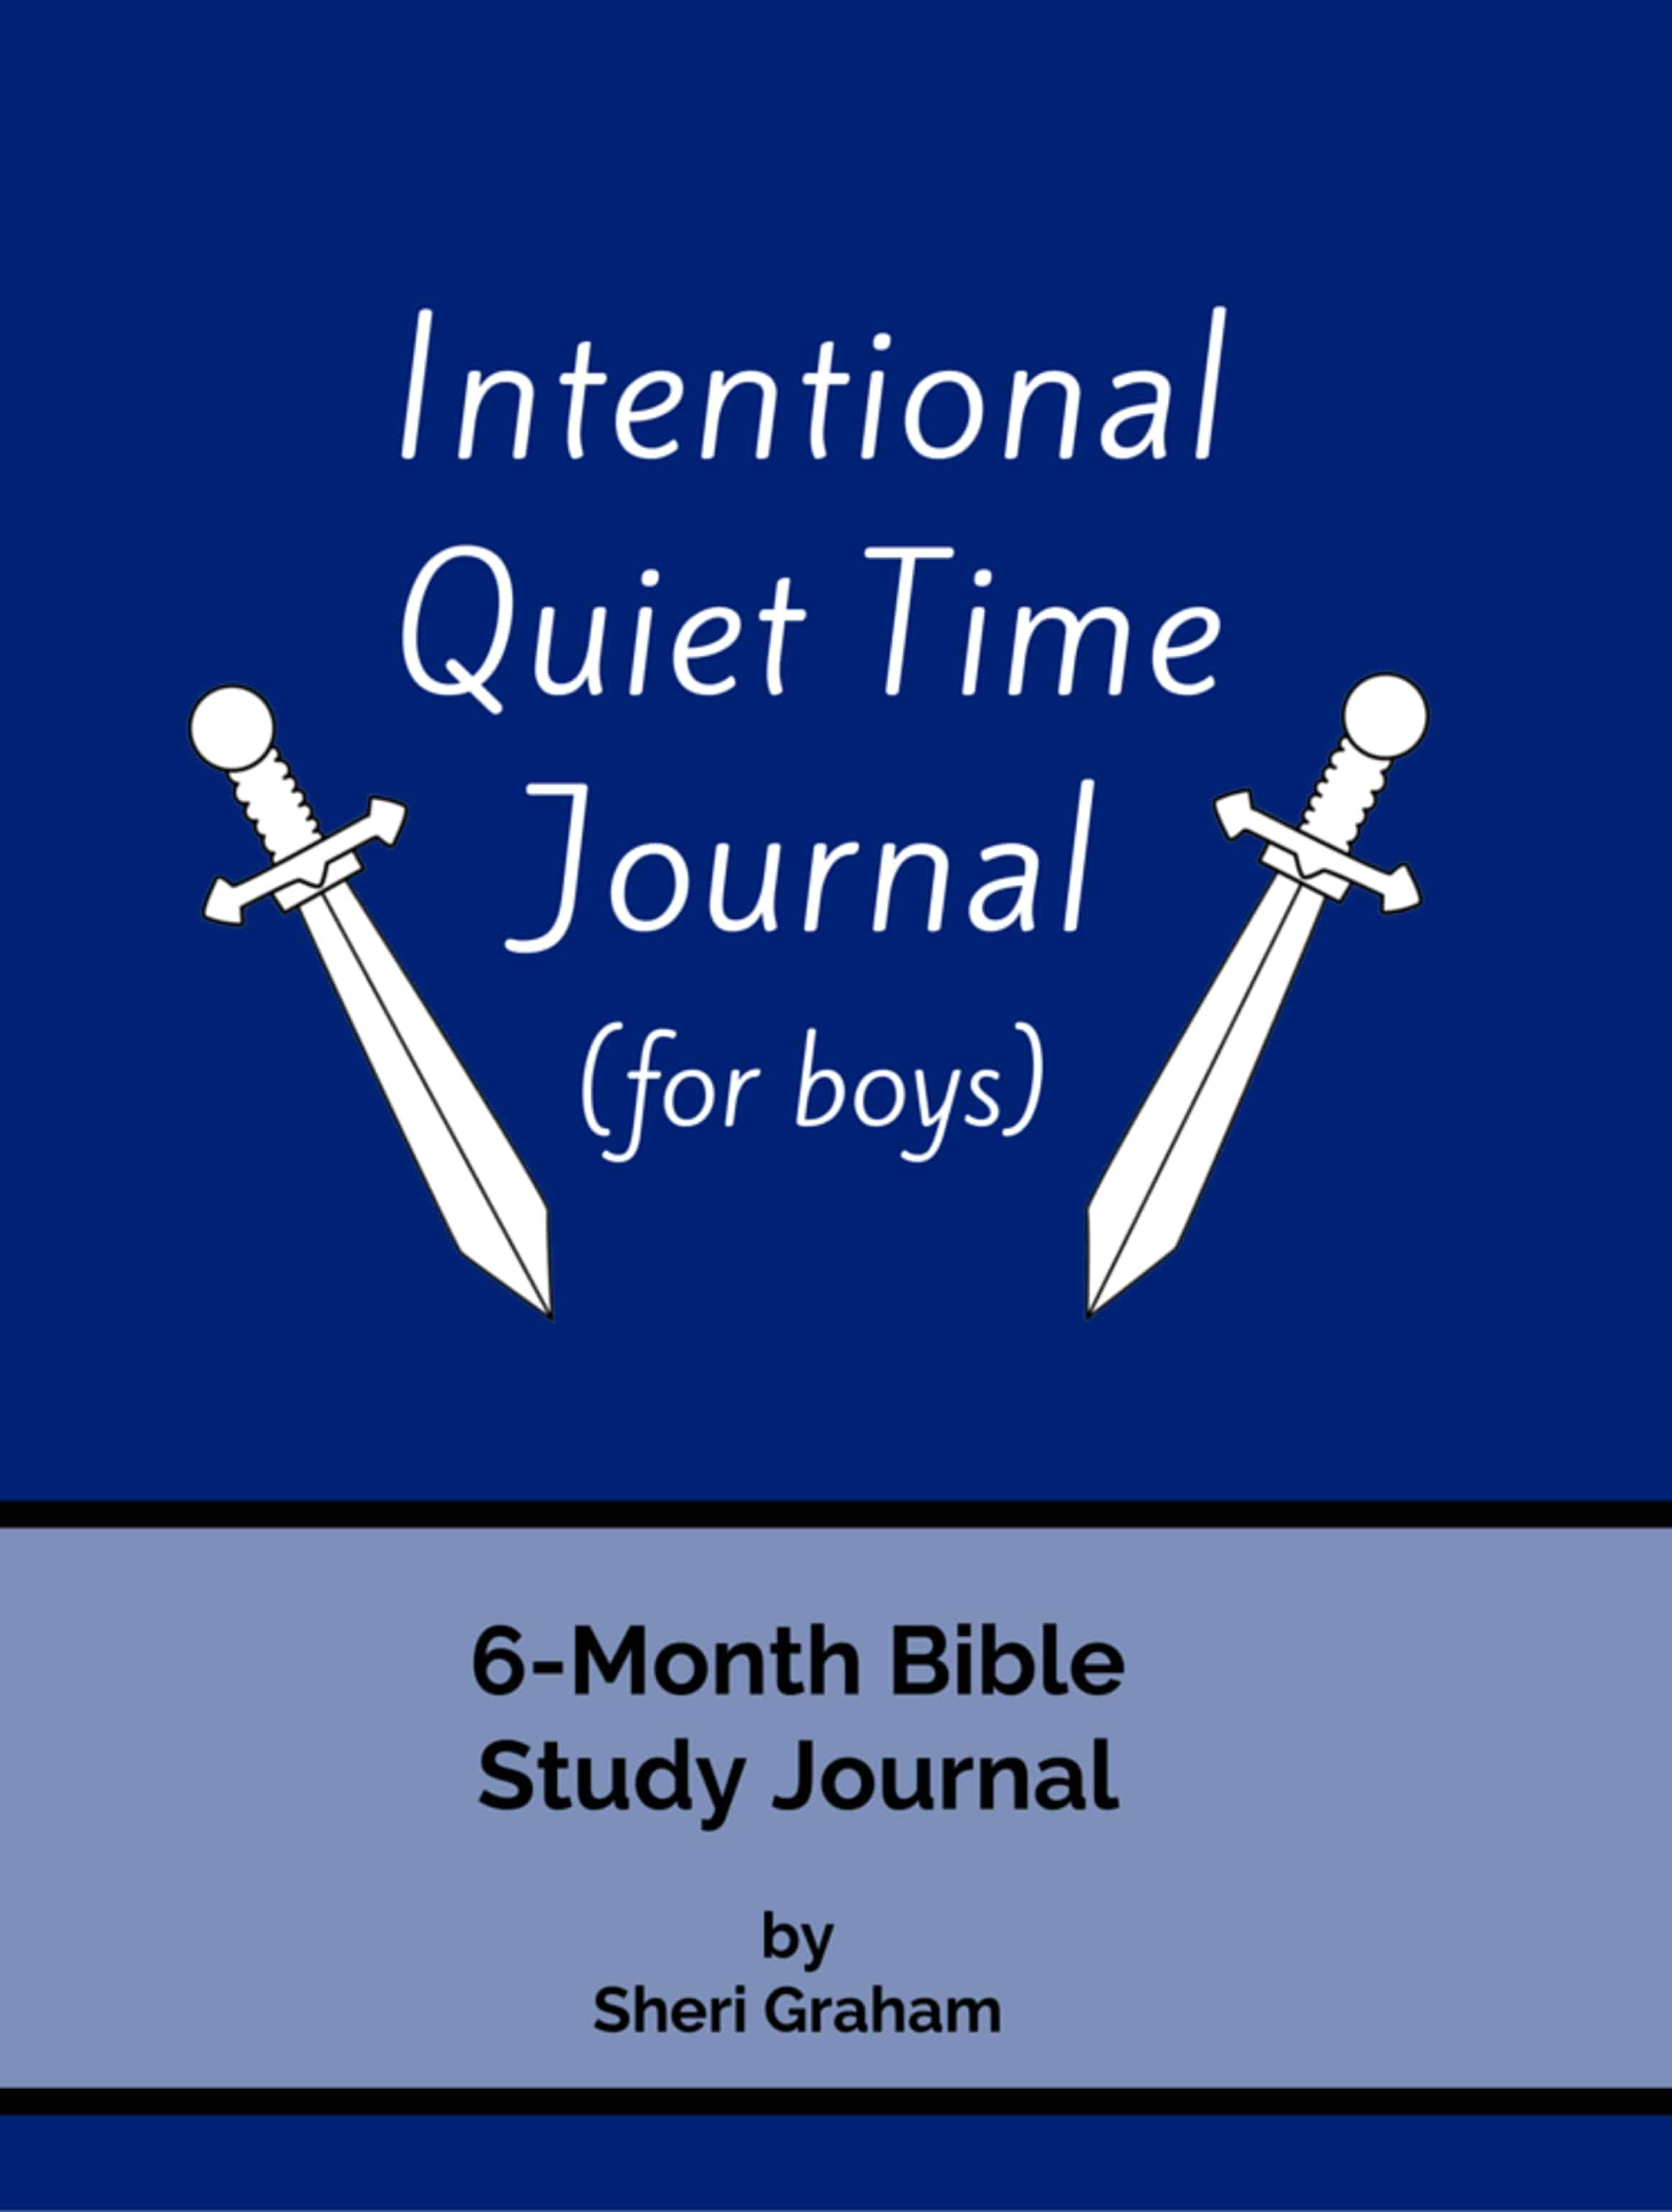 Intentional Quiet Time Journal (for boys) Now Available!